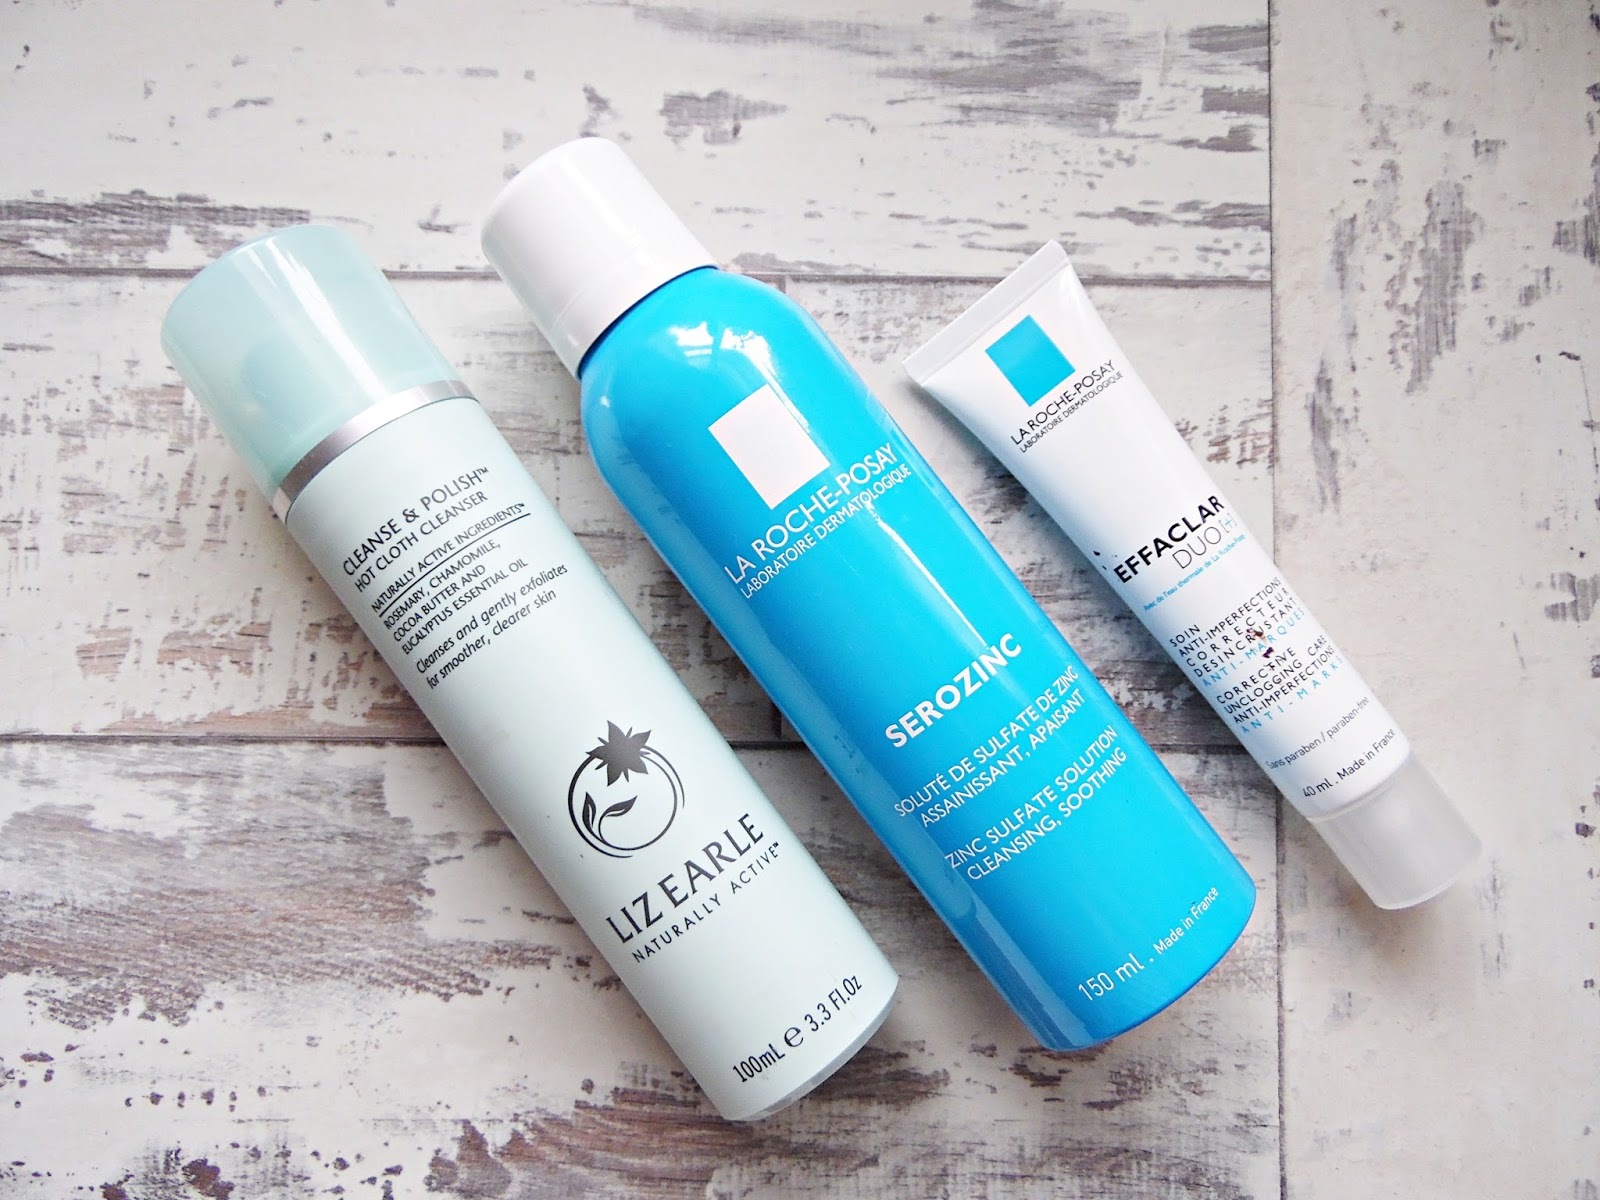 Top Three Skincare Products